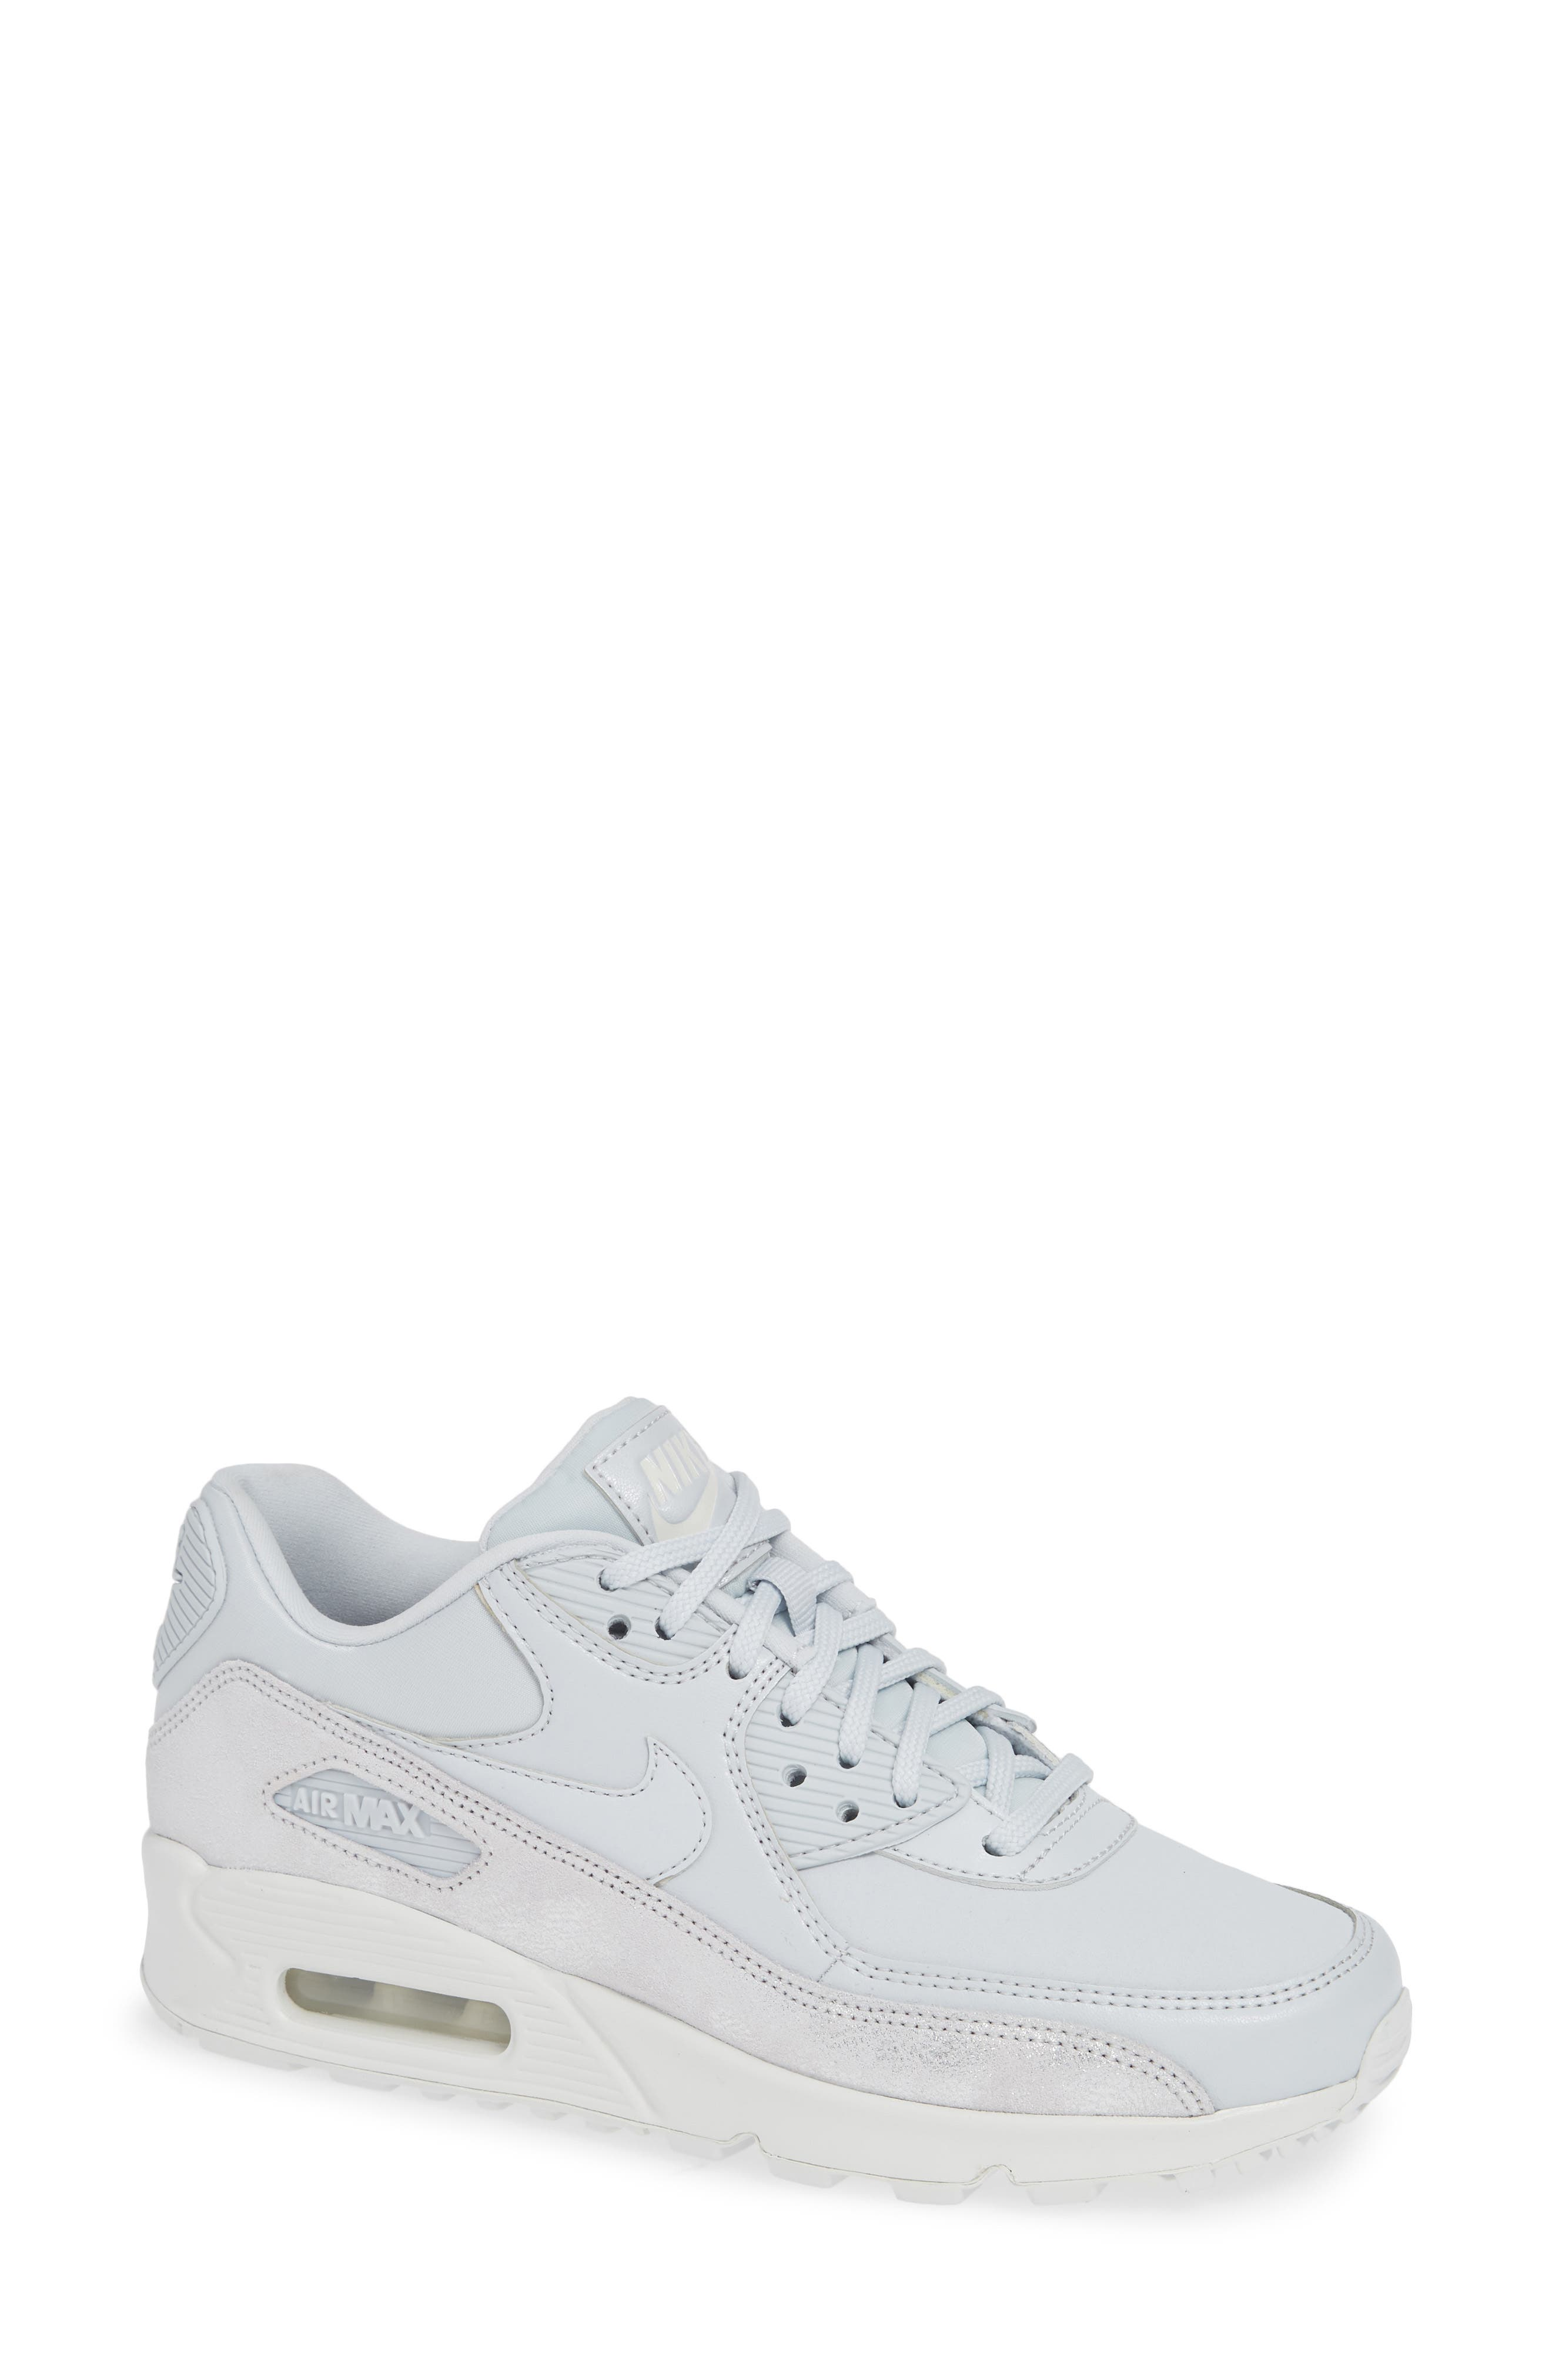 Air Max 90 SE Sneaker,                             Main thumbnail 1, color,                             PURE PLATINUM/ PLATINUM- WHITE